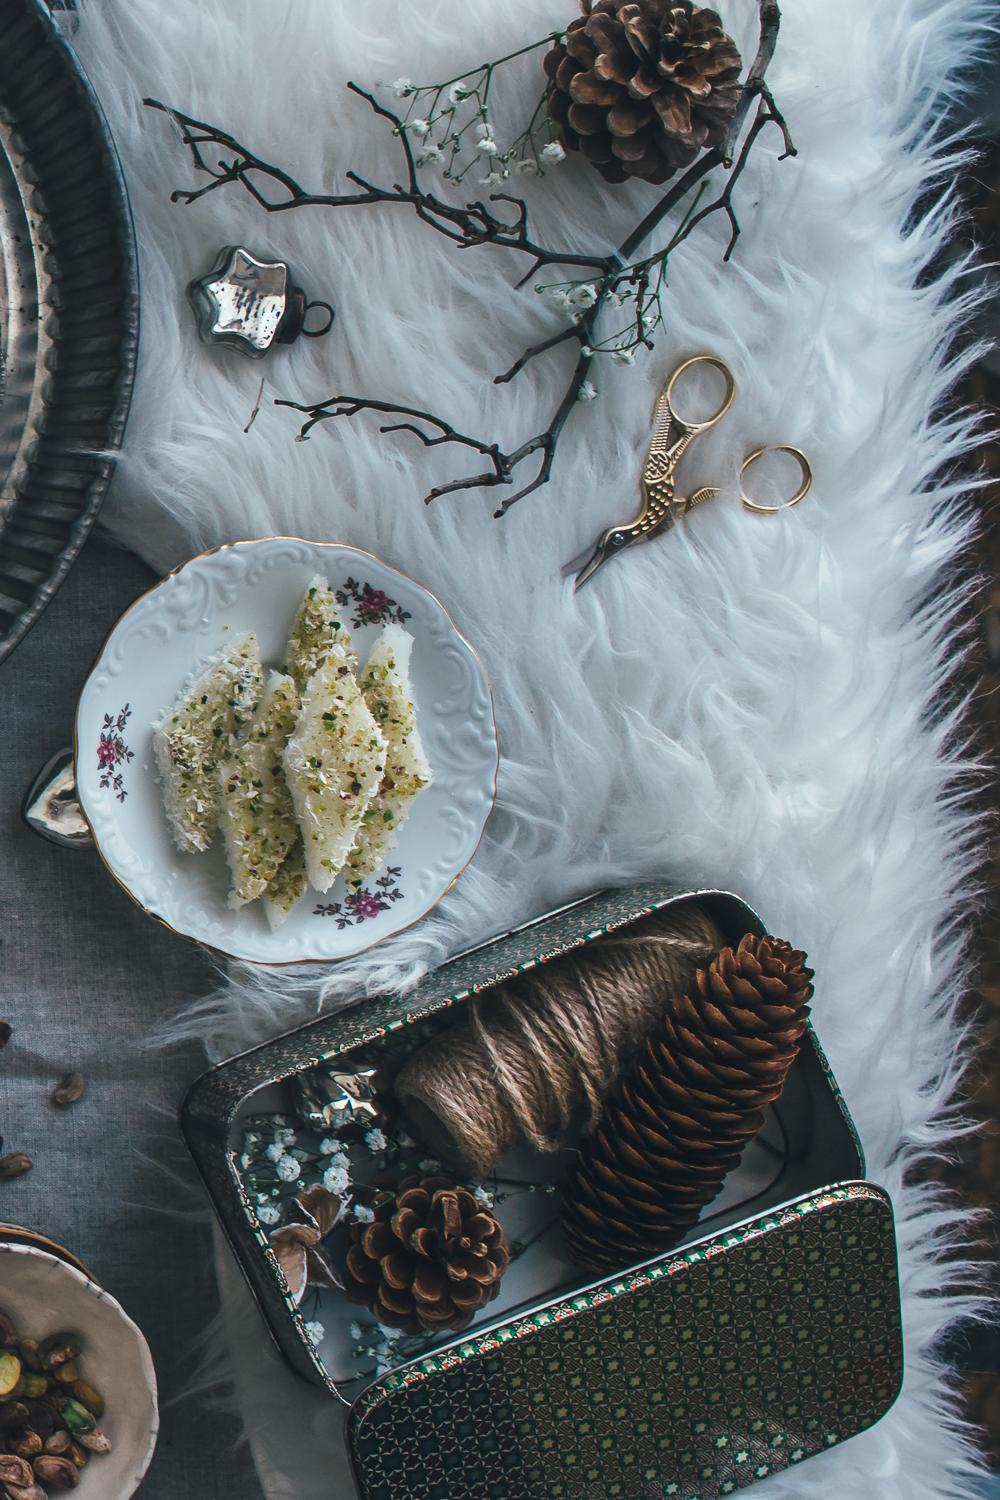 Persian Delights - Rosy Candies for Christmas Edible Gifts | Lab Noon by Saghar Setareh-13